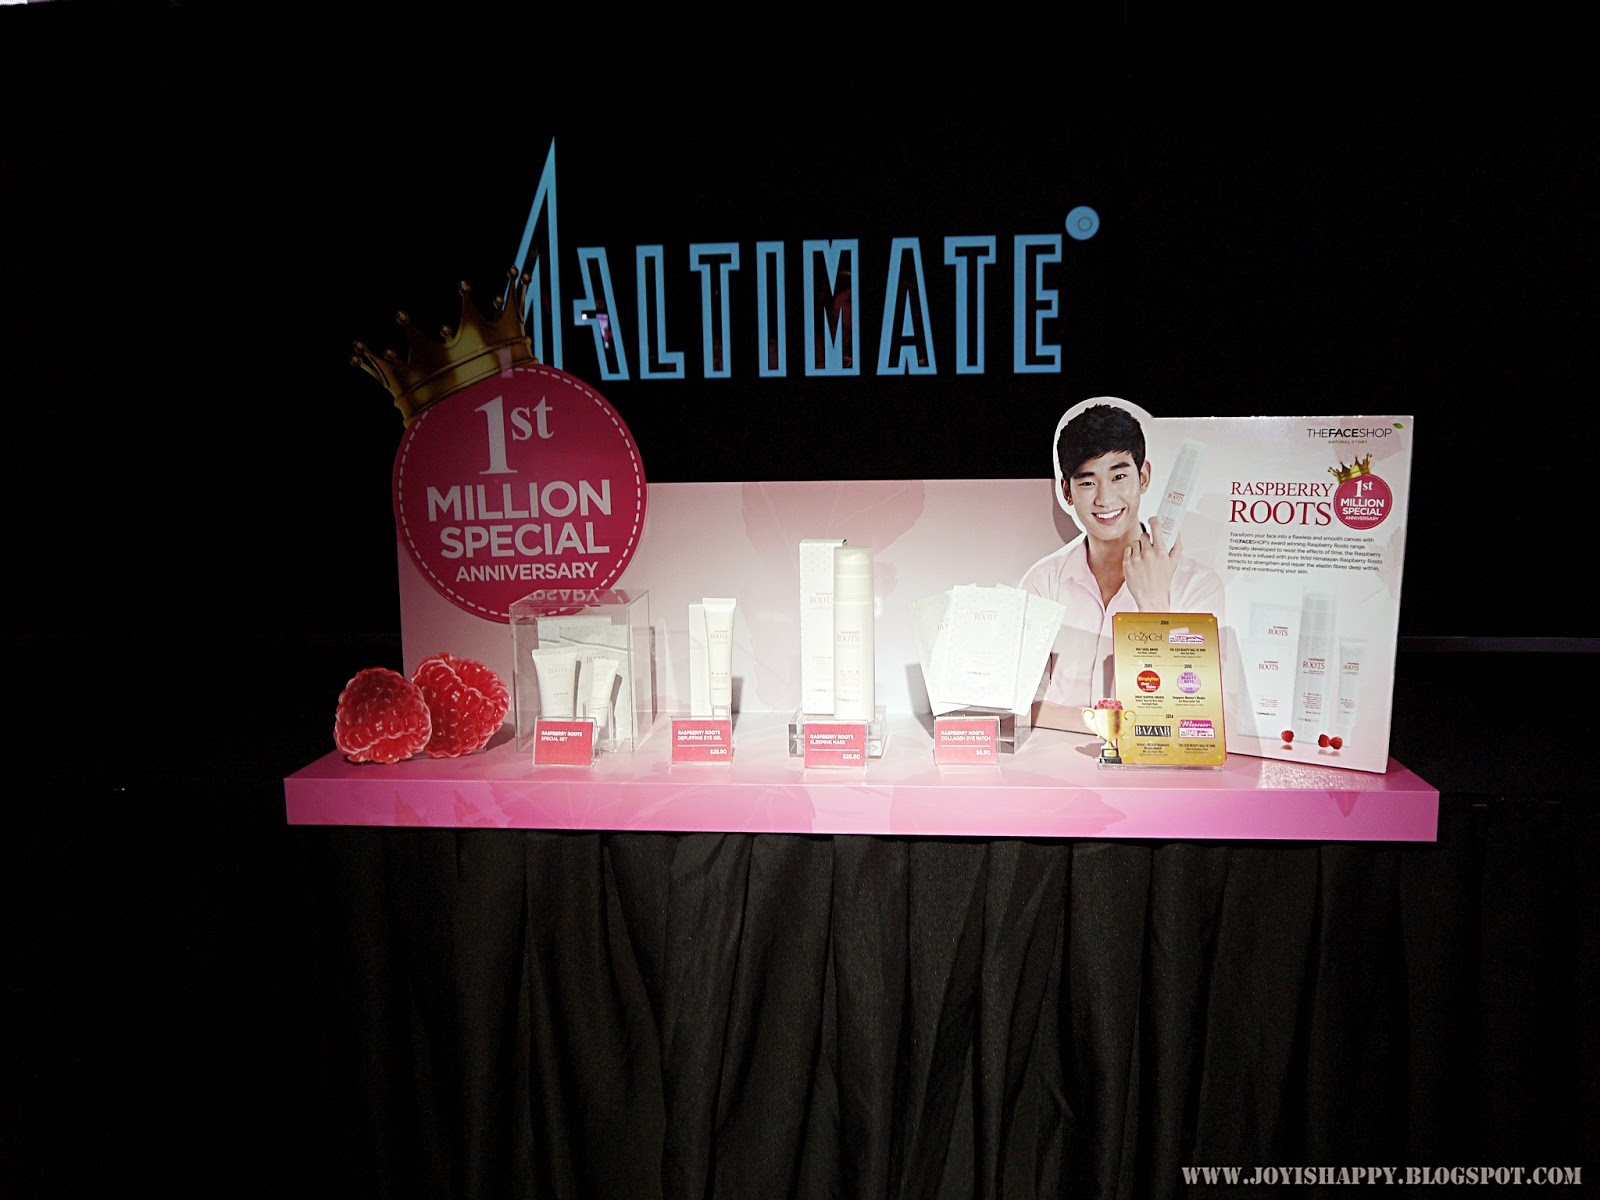 TheFaceShop Raspberry Roots 1st Million Special Anniversary